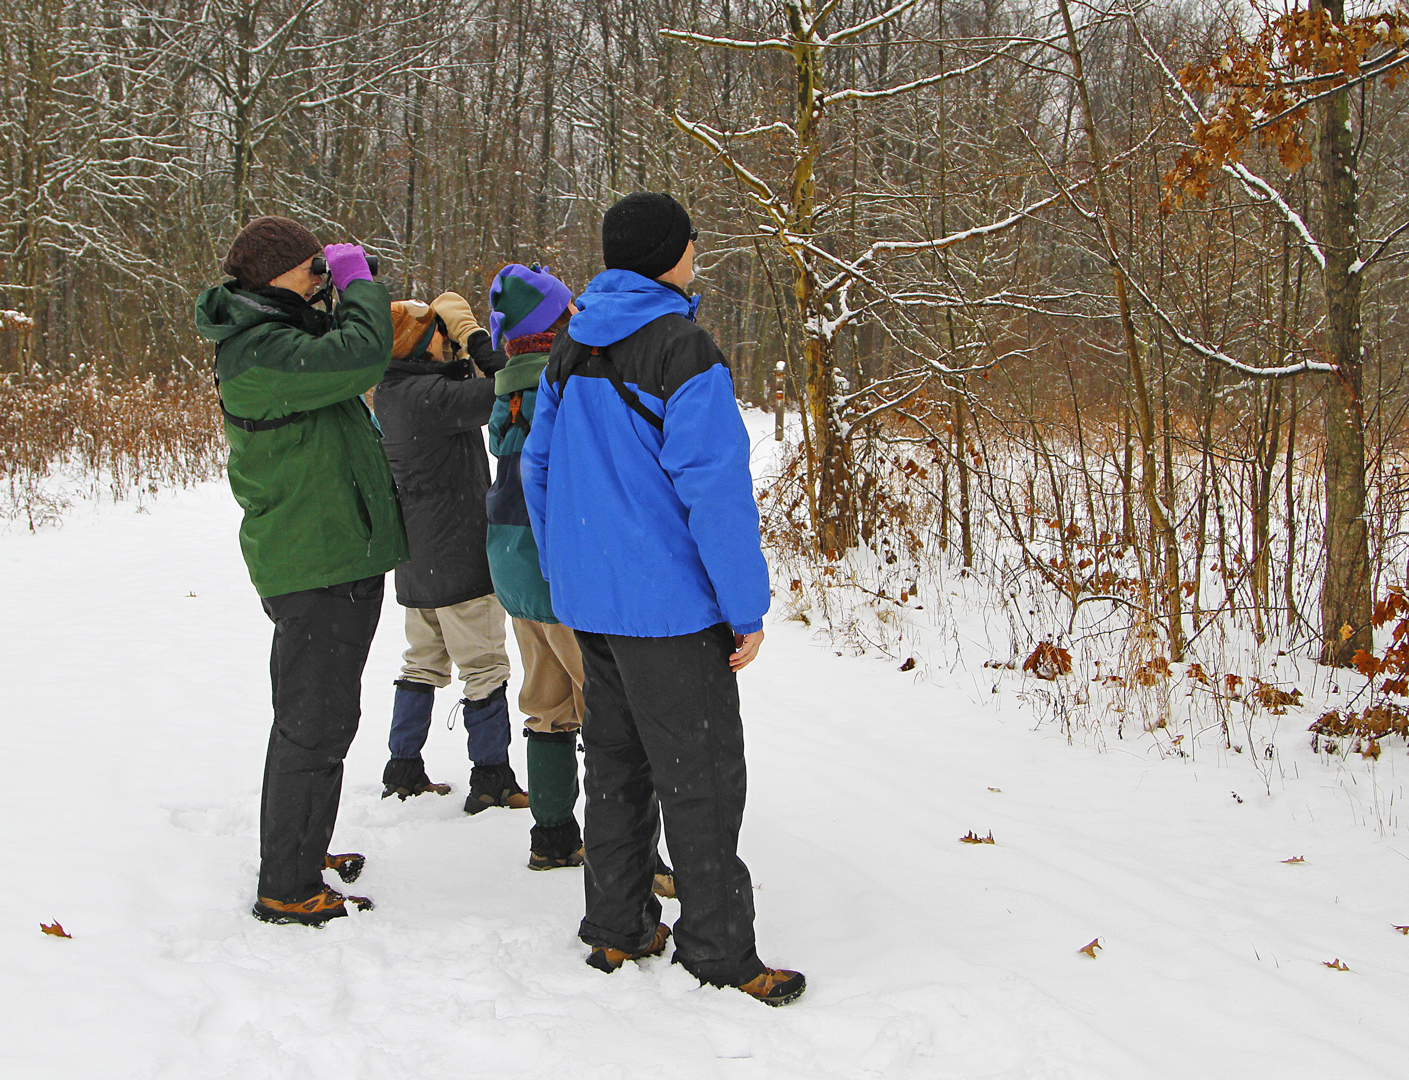 Birders look for birds on snowy day at Sharon Woods